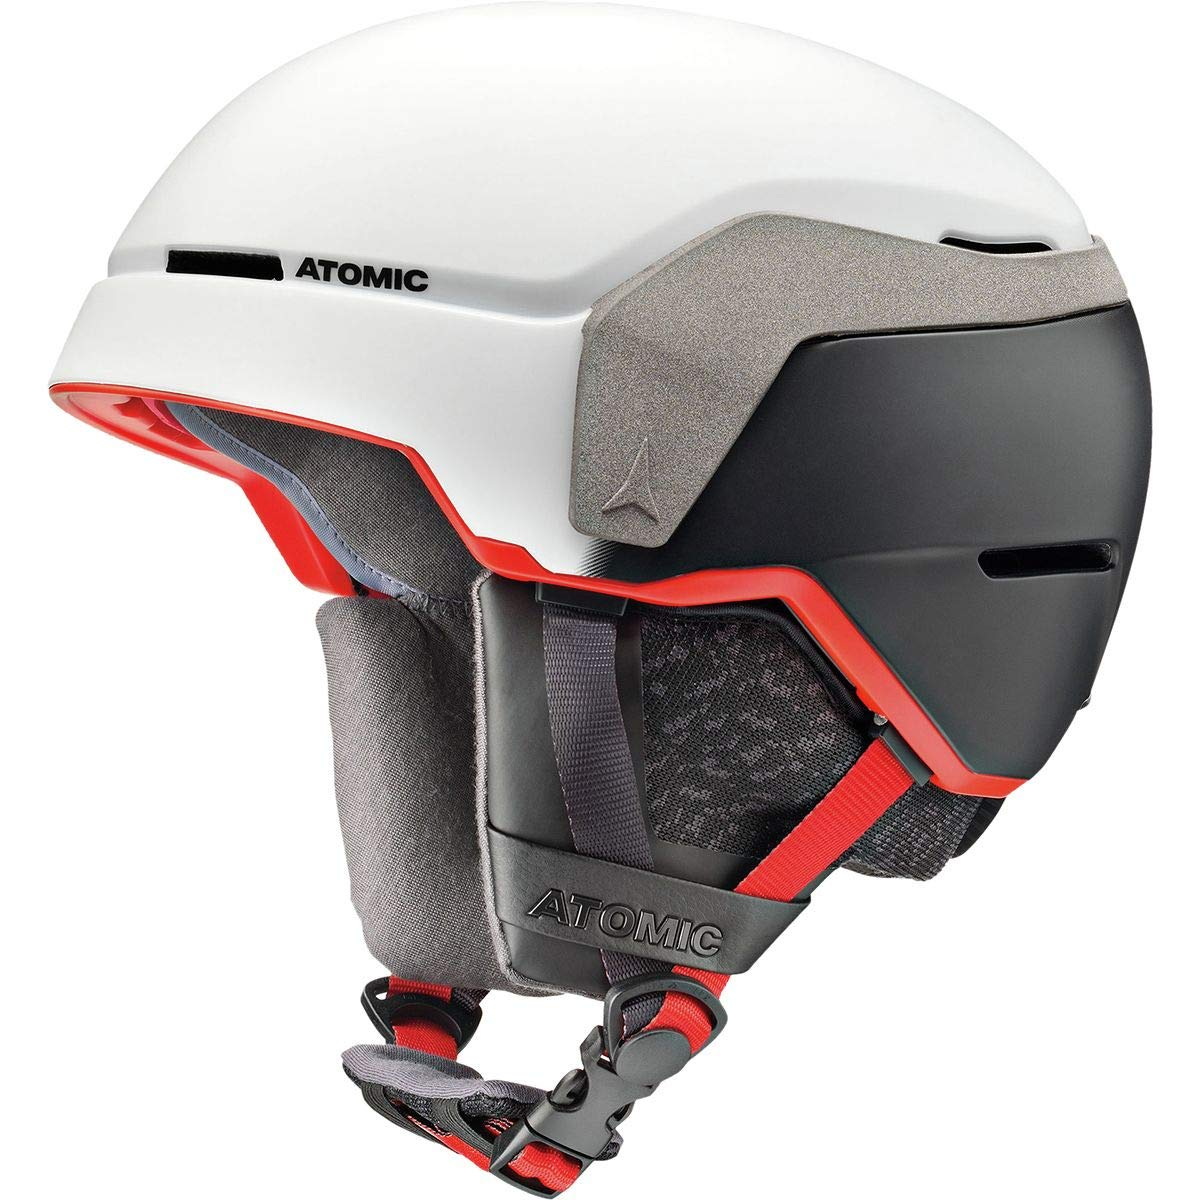 d61c820dc Atomic Mountain Ski Helmet, Count XTD, Head Size 55-59 cm, Black, Medium:  Amazon.co.uk: Sports & Outdoors